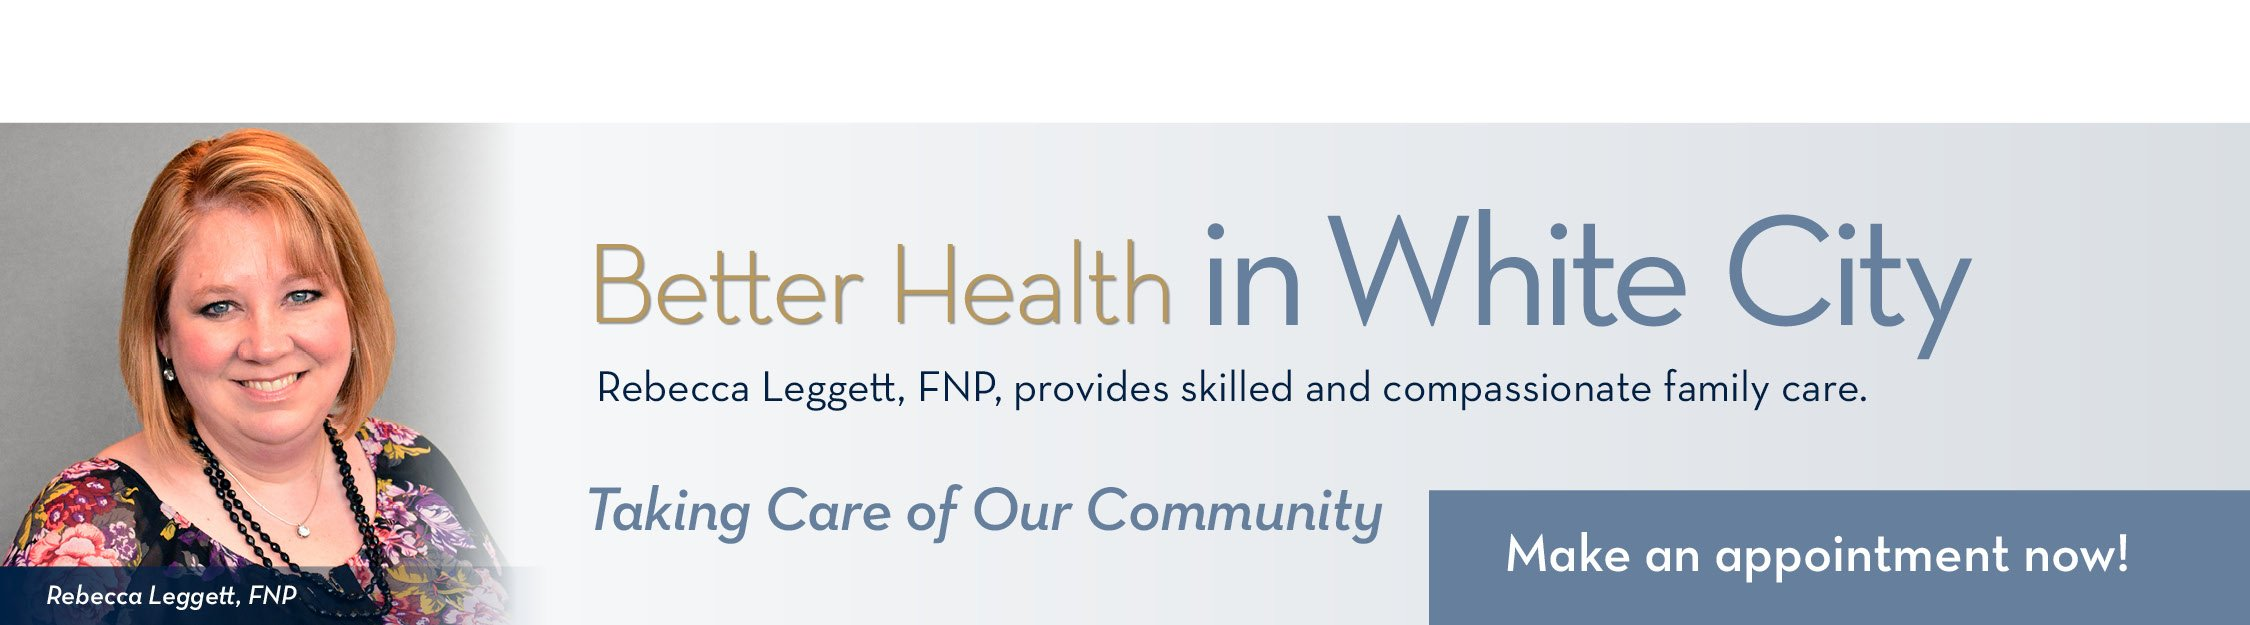 Rebecca Leggett, FNP - family care in White City, OR